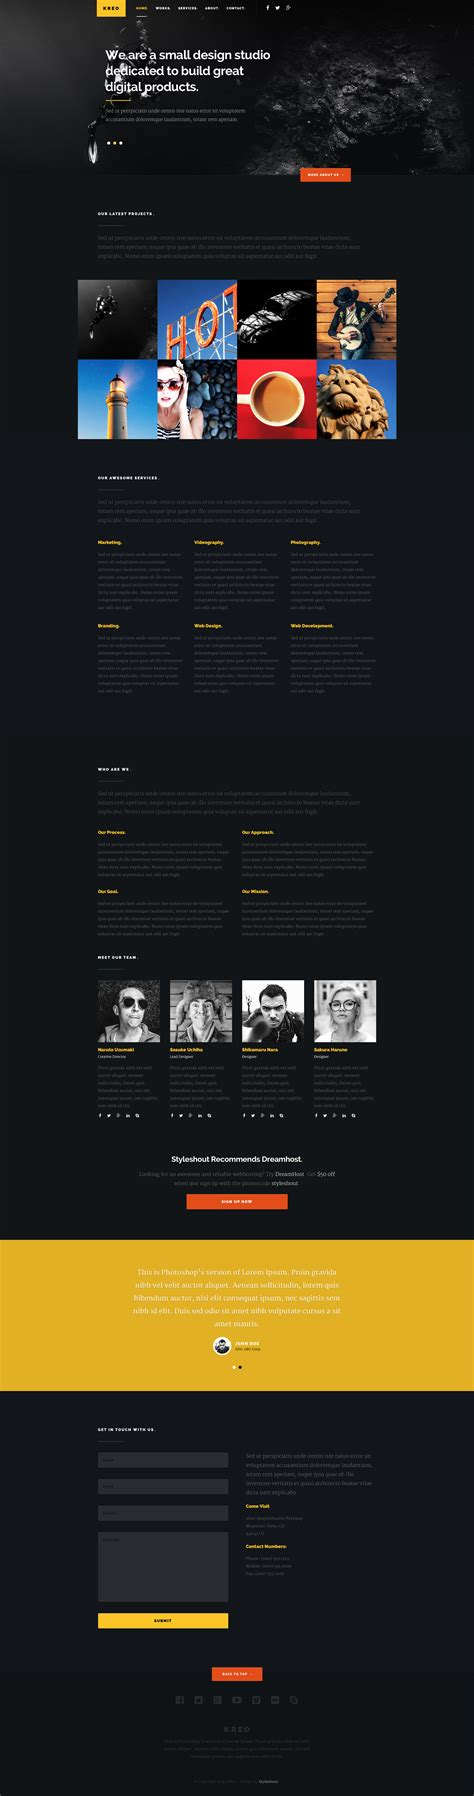 kreo free responsive html5 landing page template